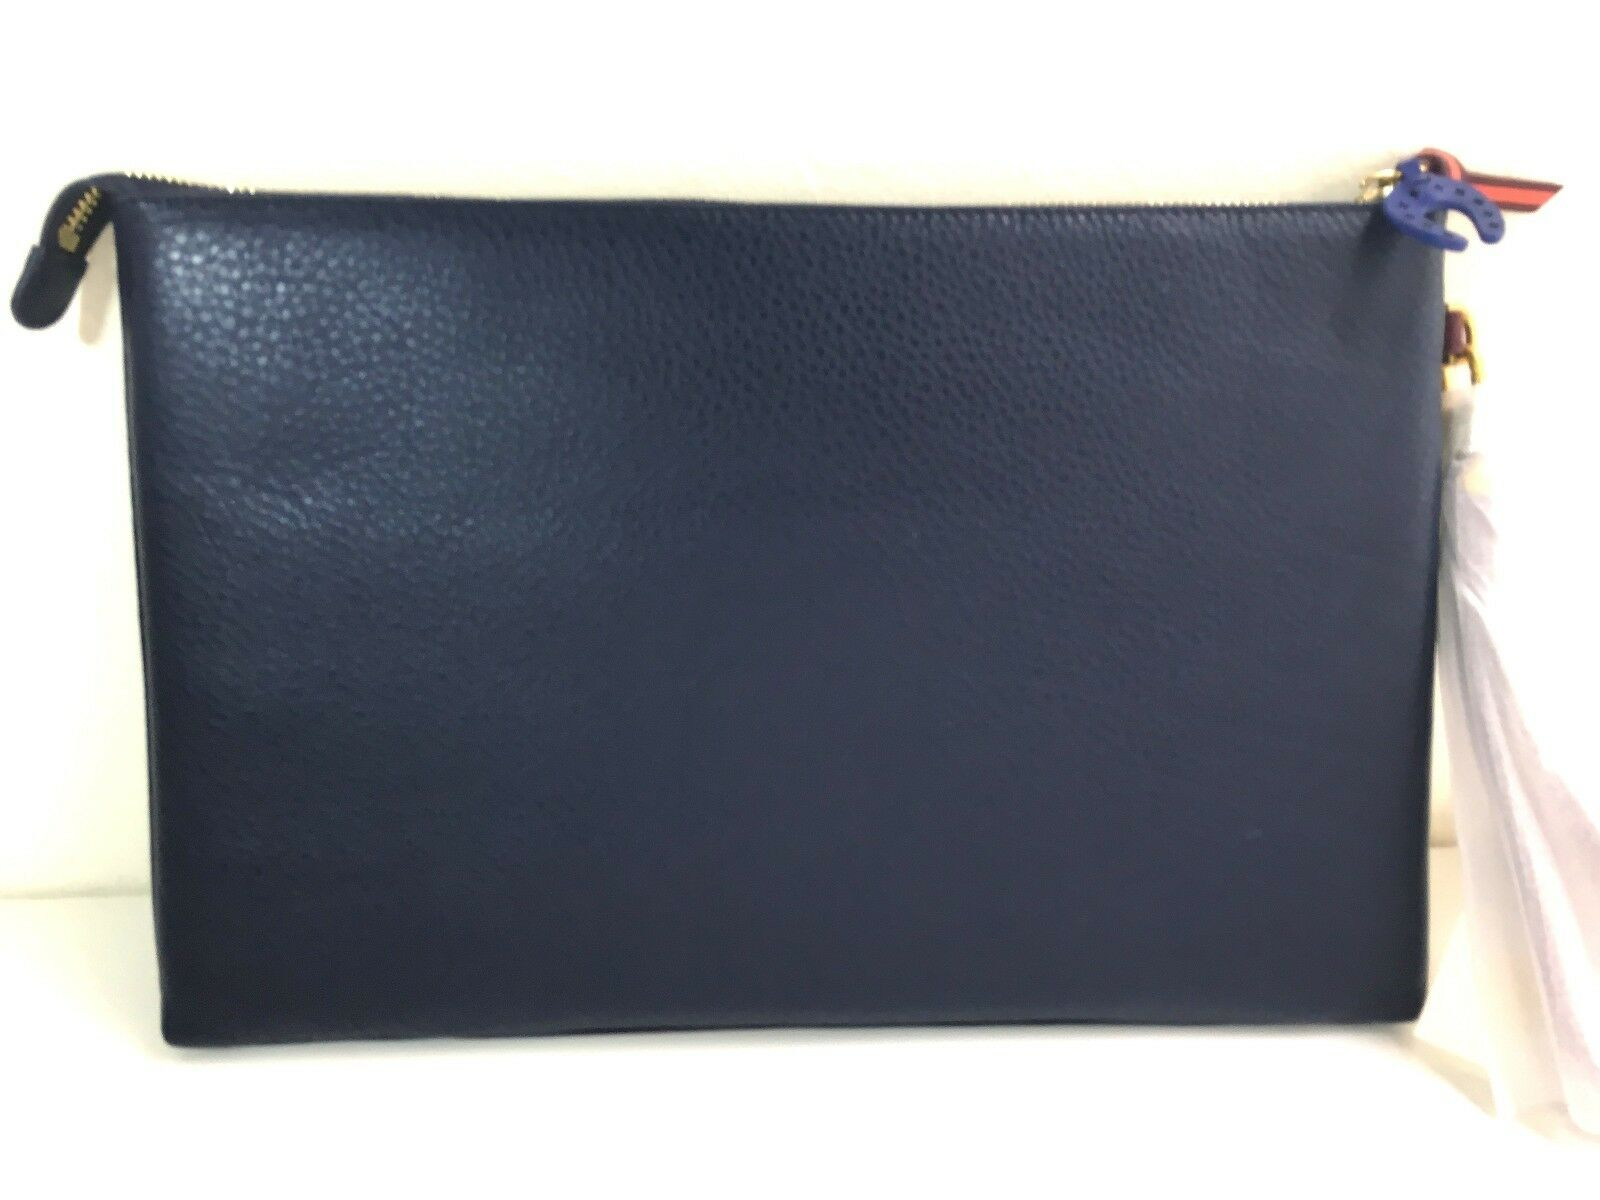 9f7028a2d19 Authentic Tory Burch Horse Large Pouch Clutch Leather Navy Blue Item 33438  for sale online